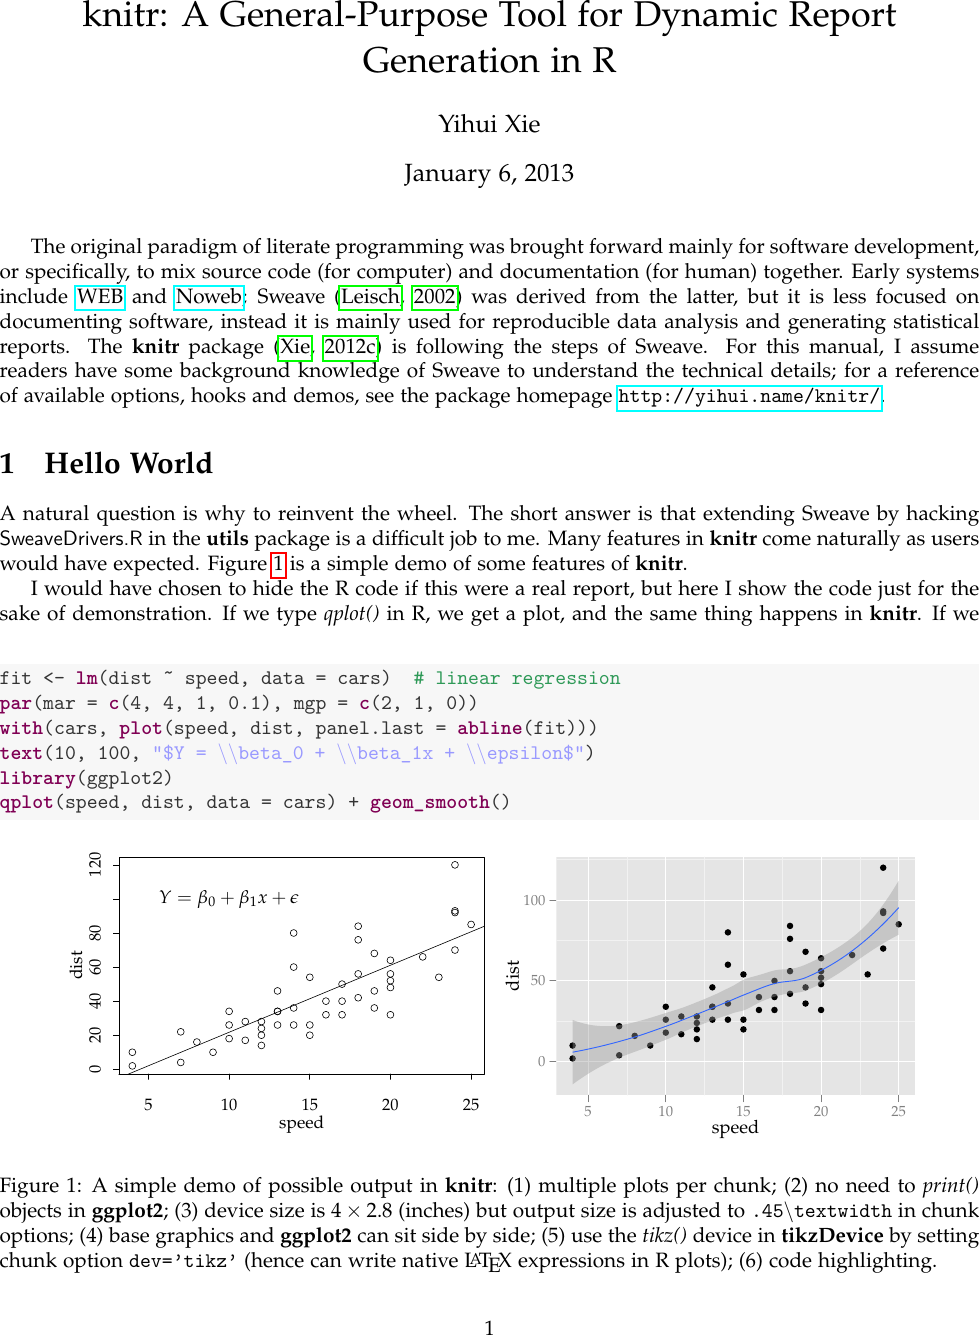 Knitr: A General Purpose Tool For Dynamic Report Generation In R